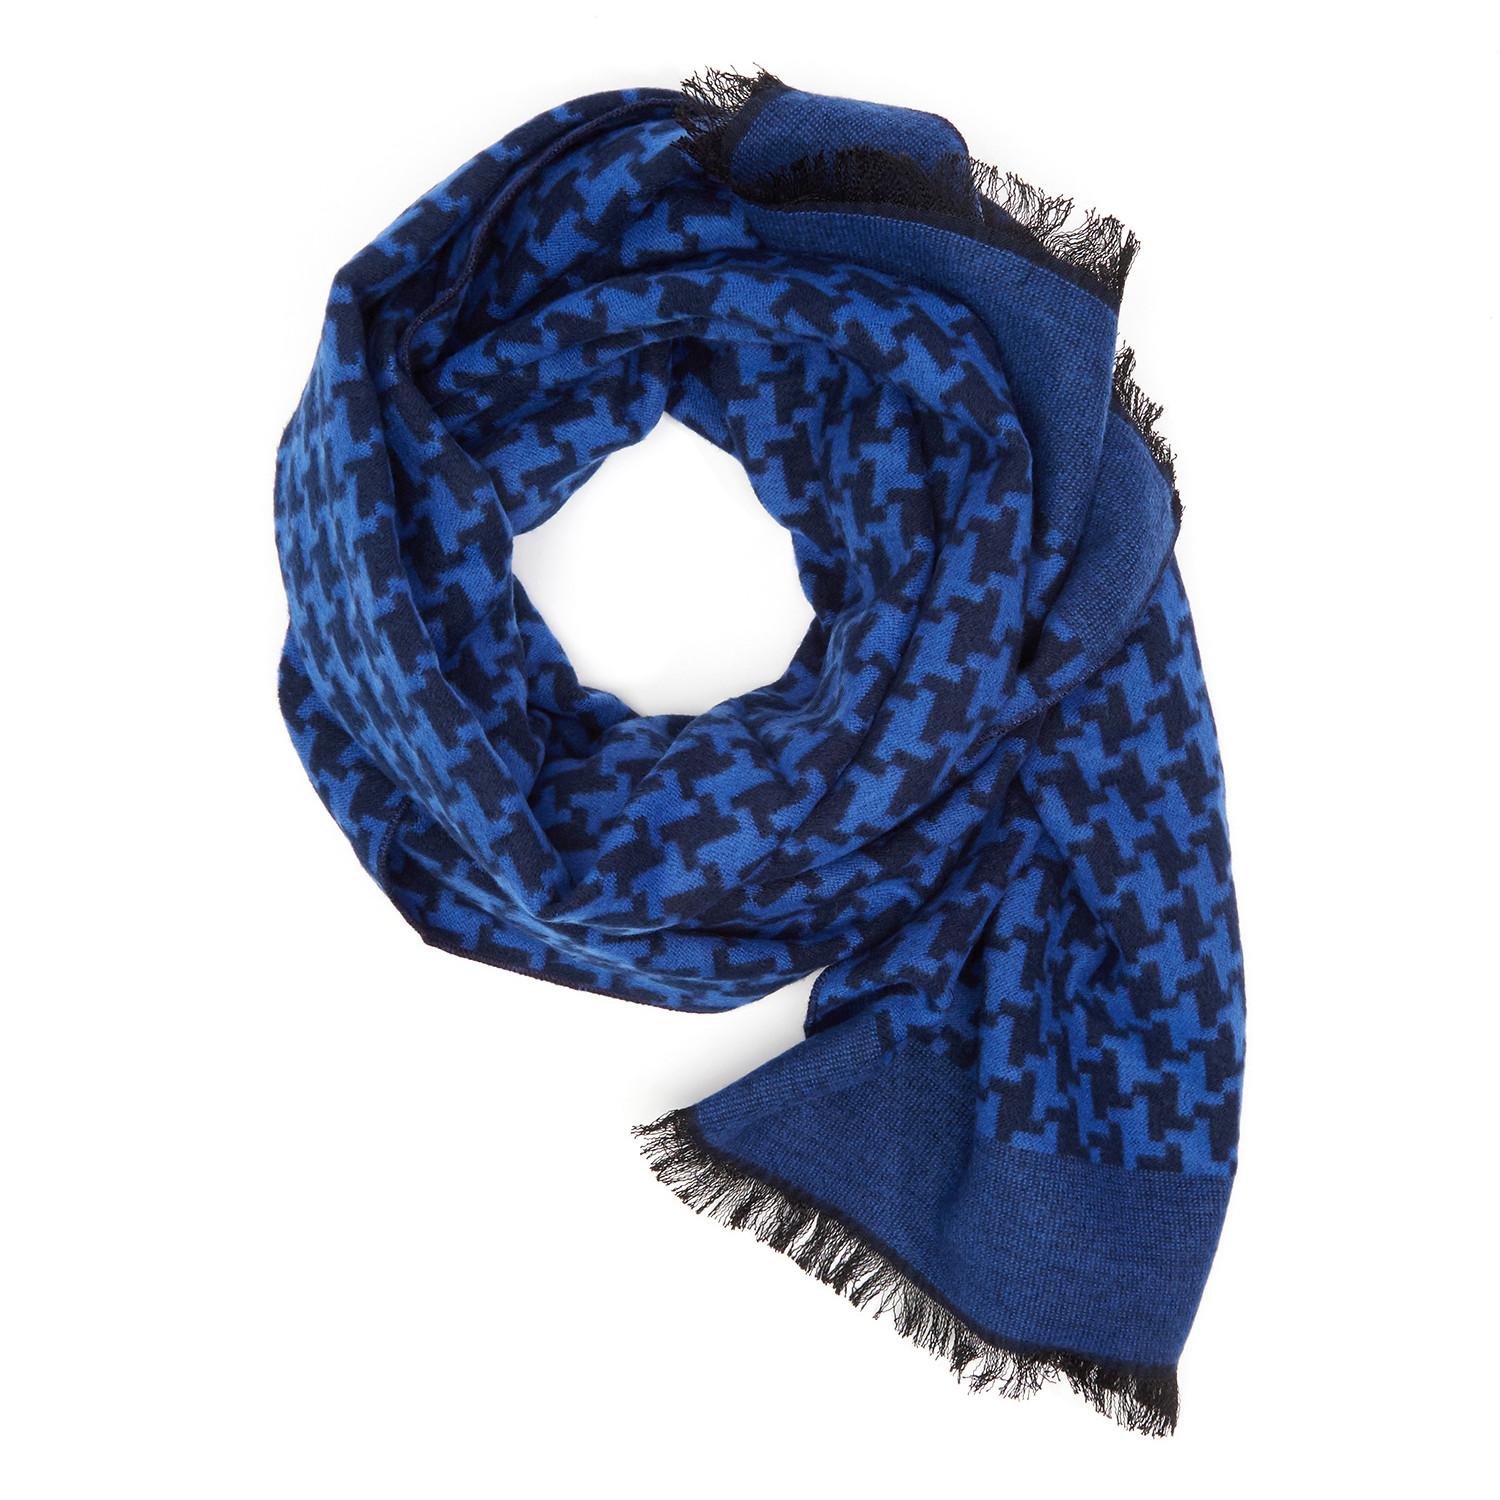 Blue + Black Houndstooth Scarf - DIBI - Touch of Modern